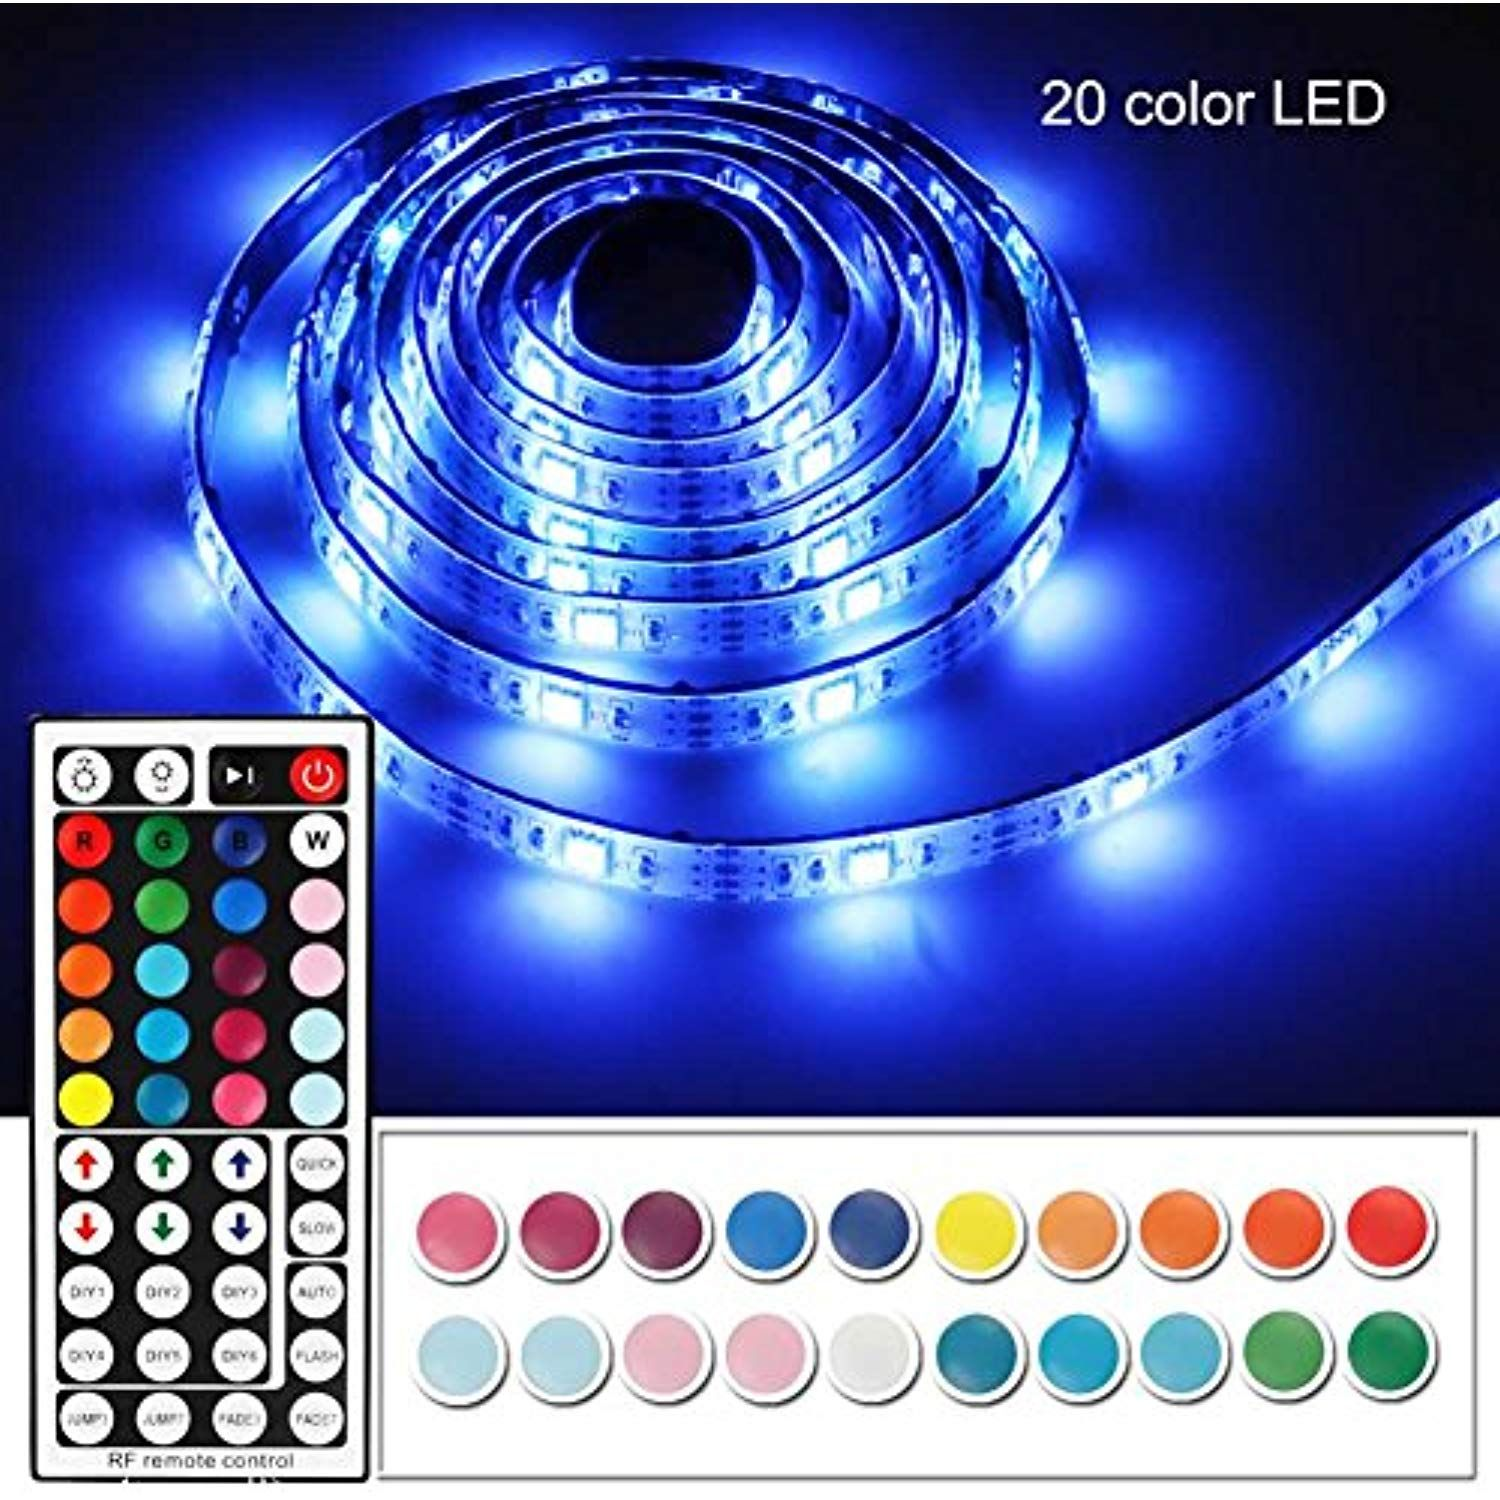 Battery Powered Led Strip Lights With 44 Keys Rf Remote Imenou Usb Battery Operated Flexible Waterproof Col Rgb Led Lights Led Strip Lighting Led Light Strips